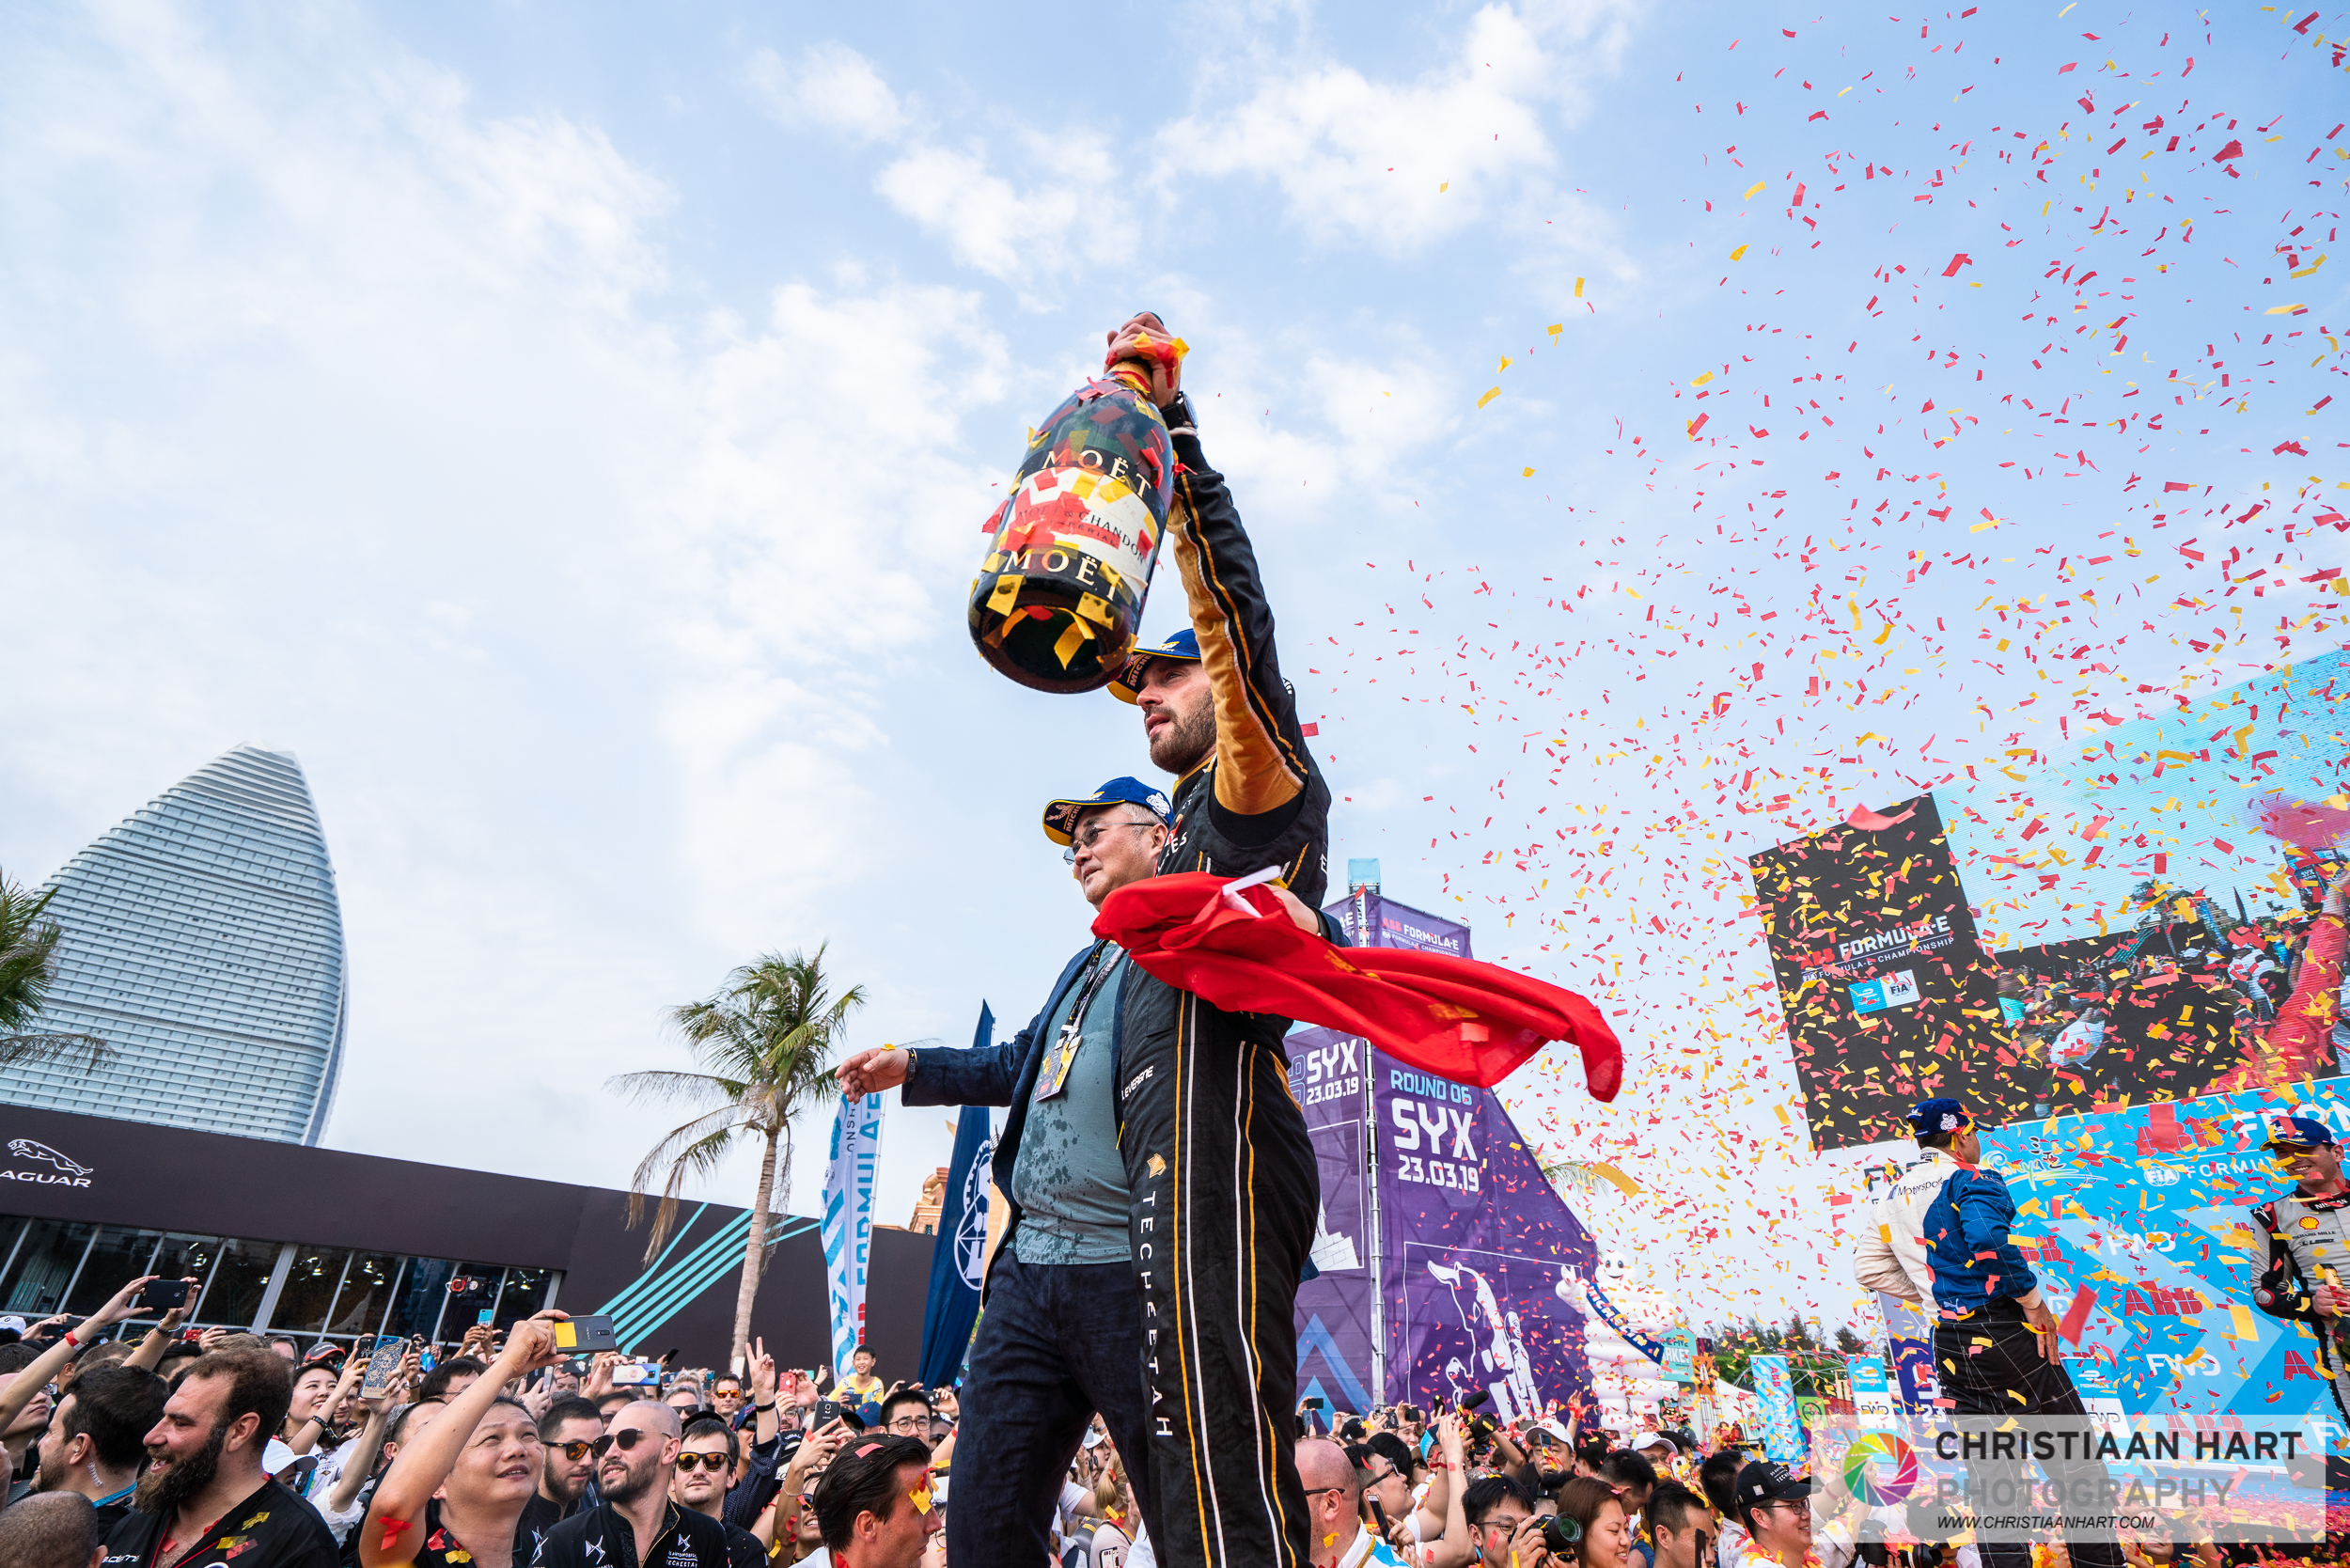 Jean Eric Vergne celebrating his win!